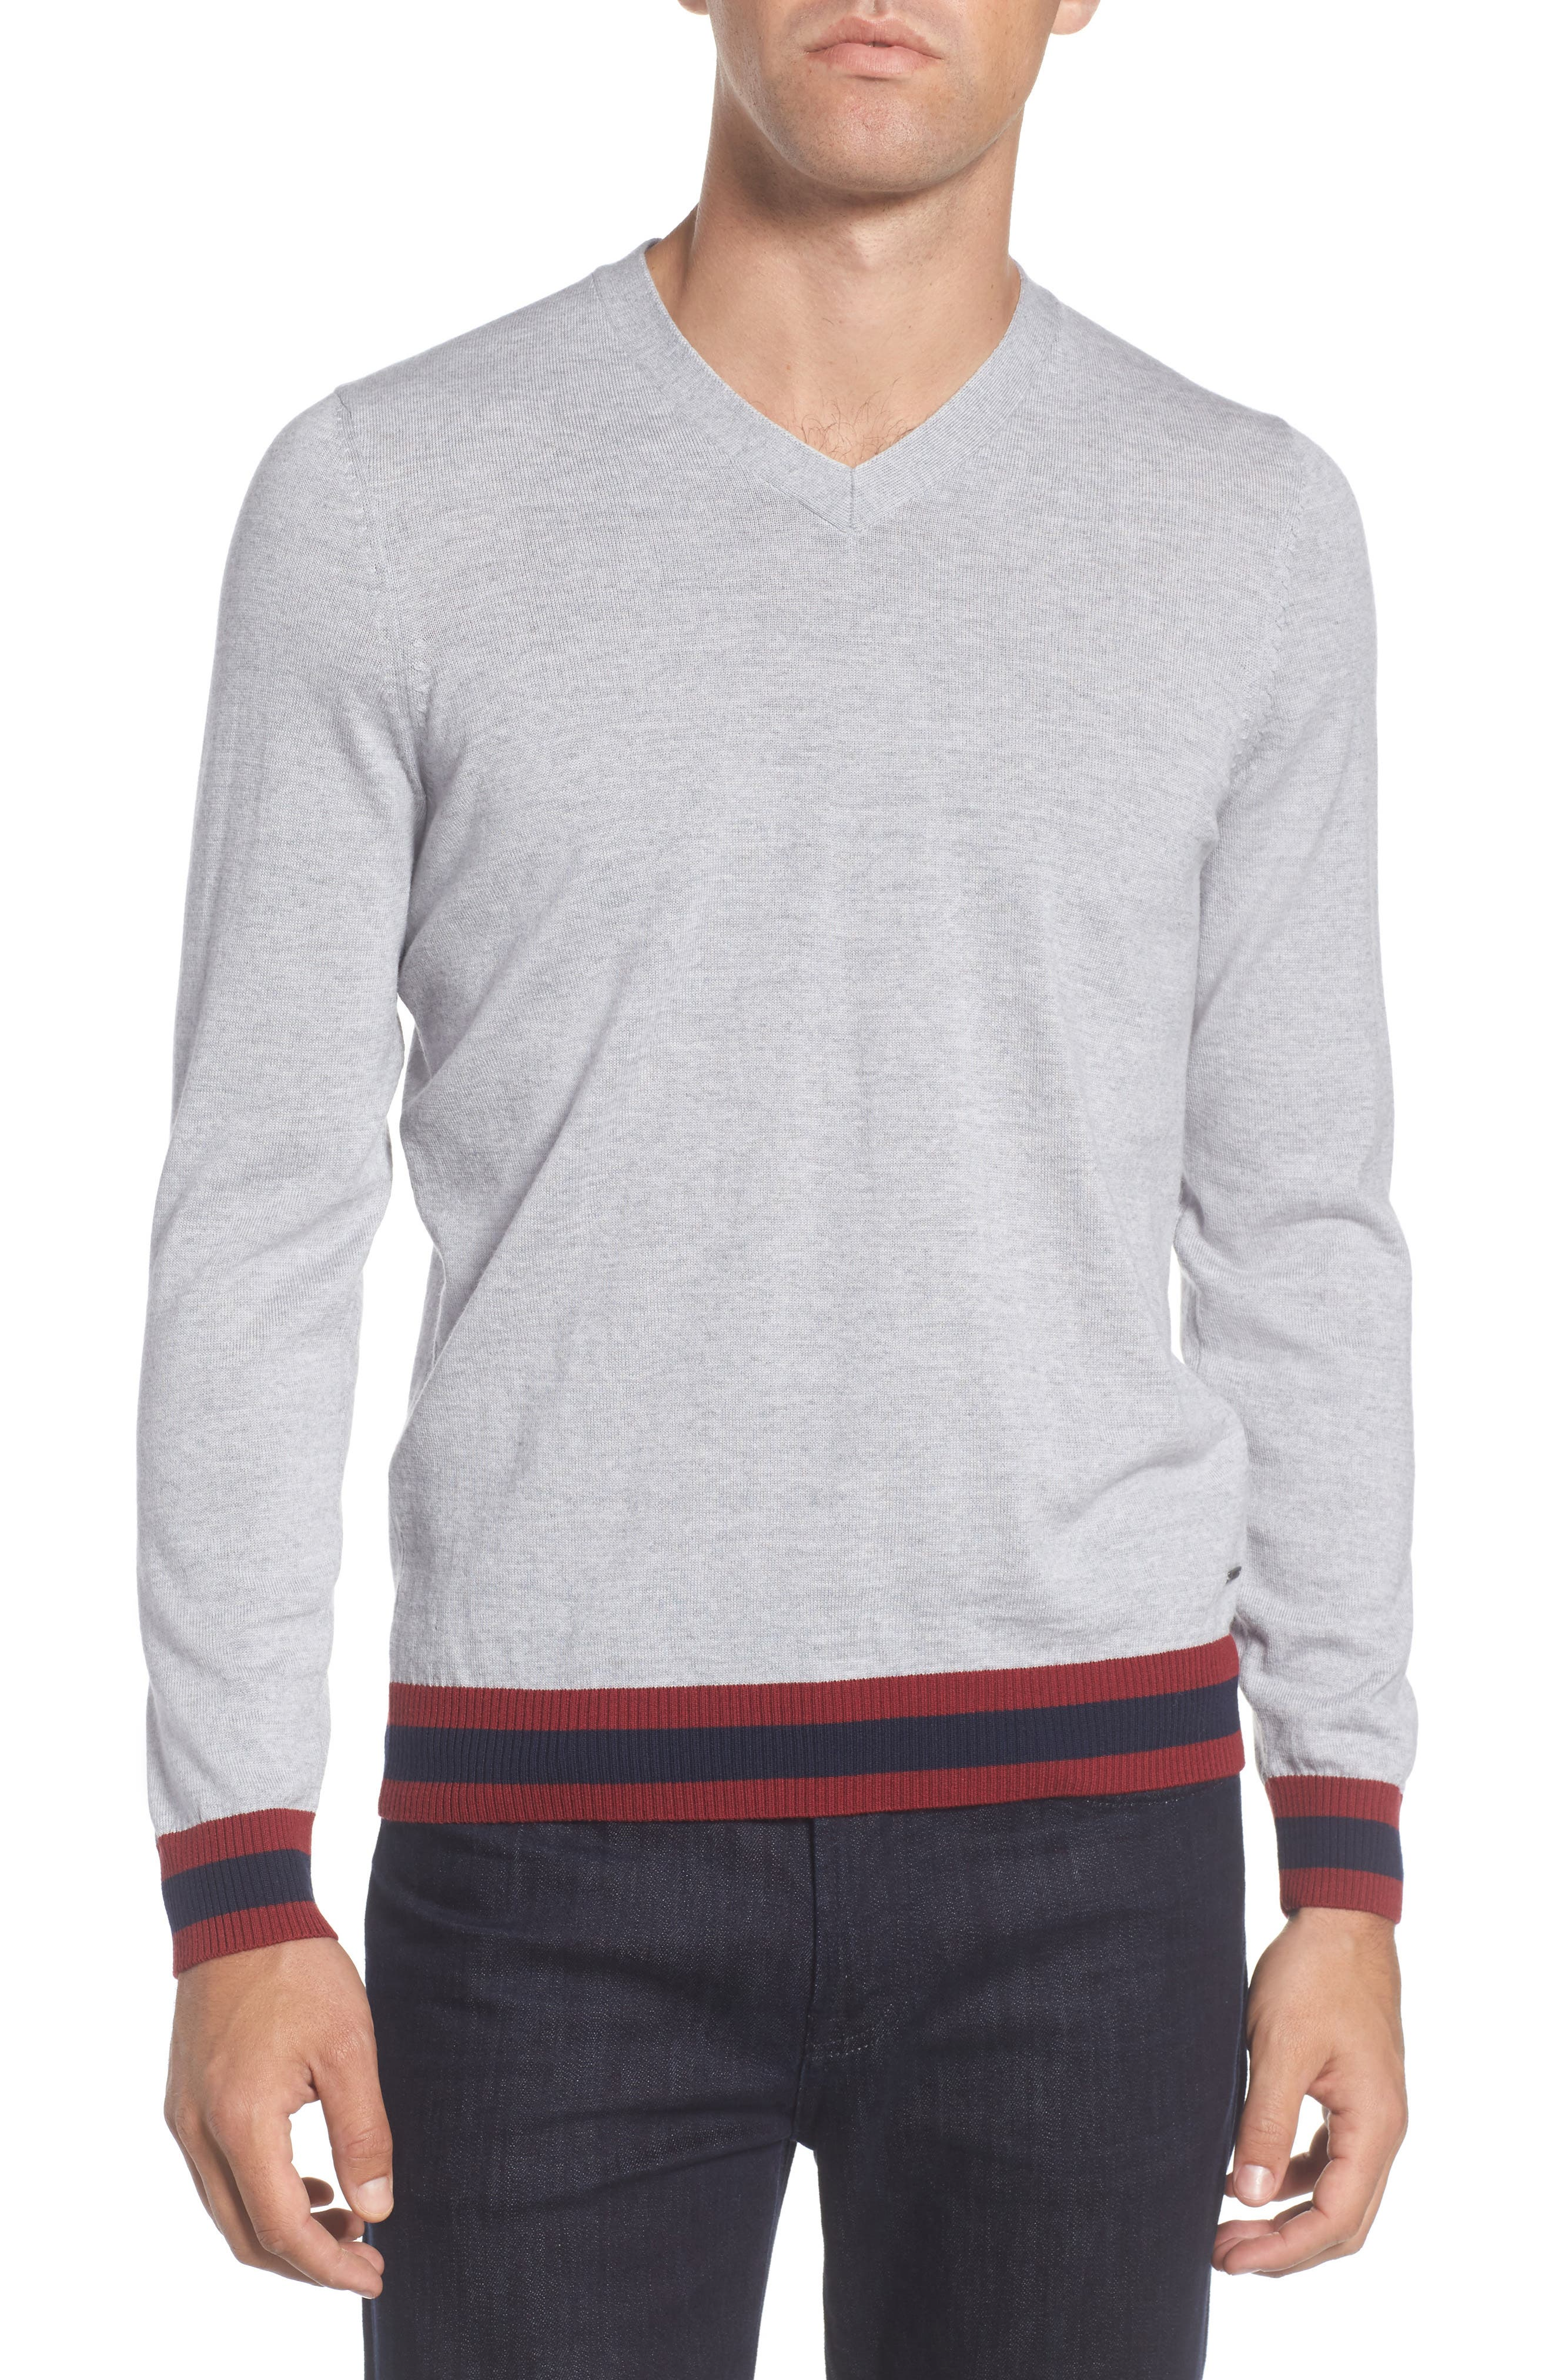 Navello Slim Fit Wool V-Neck Sweater,                             Main thumbnail 1, color,                             072